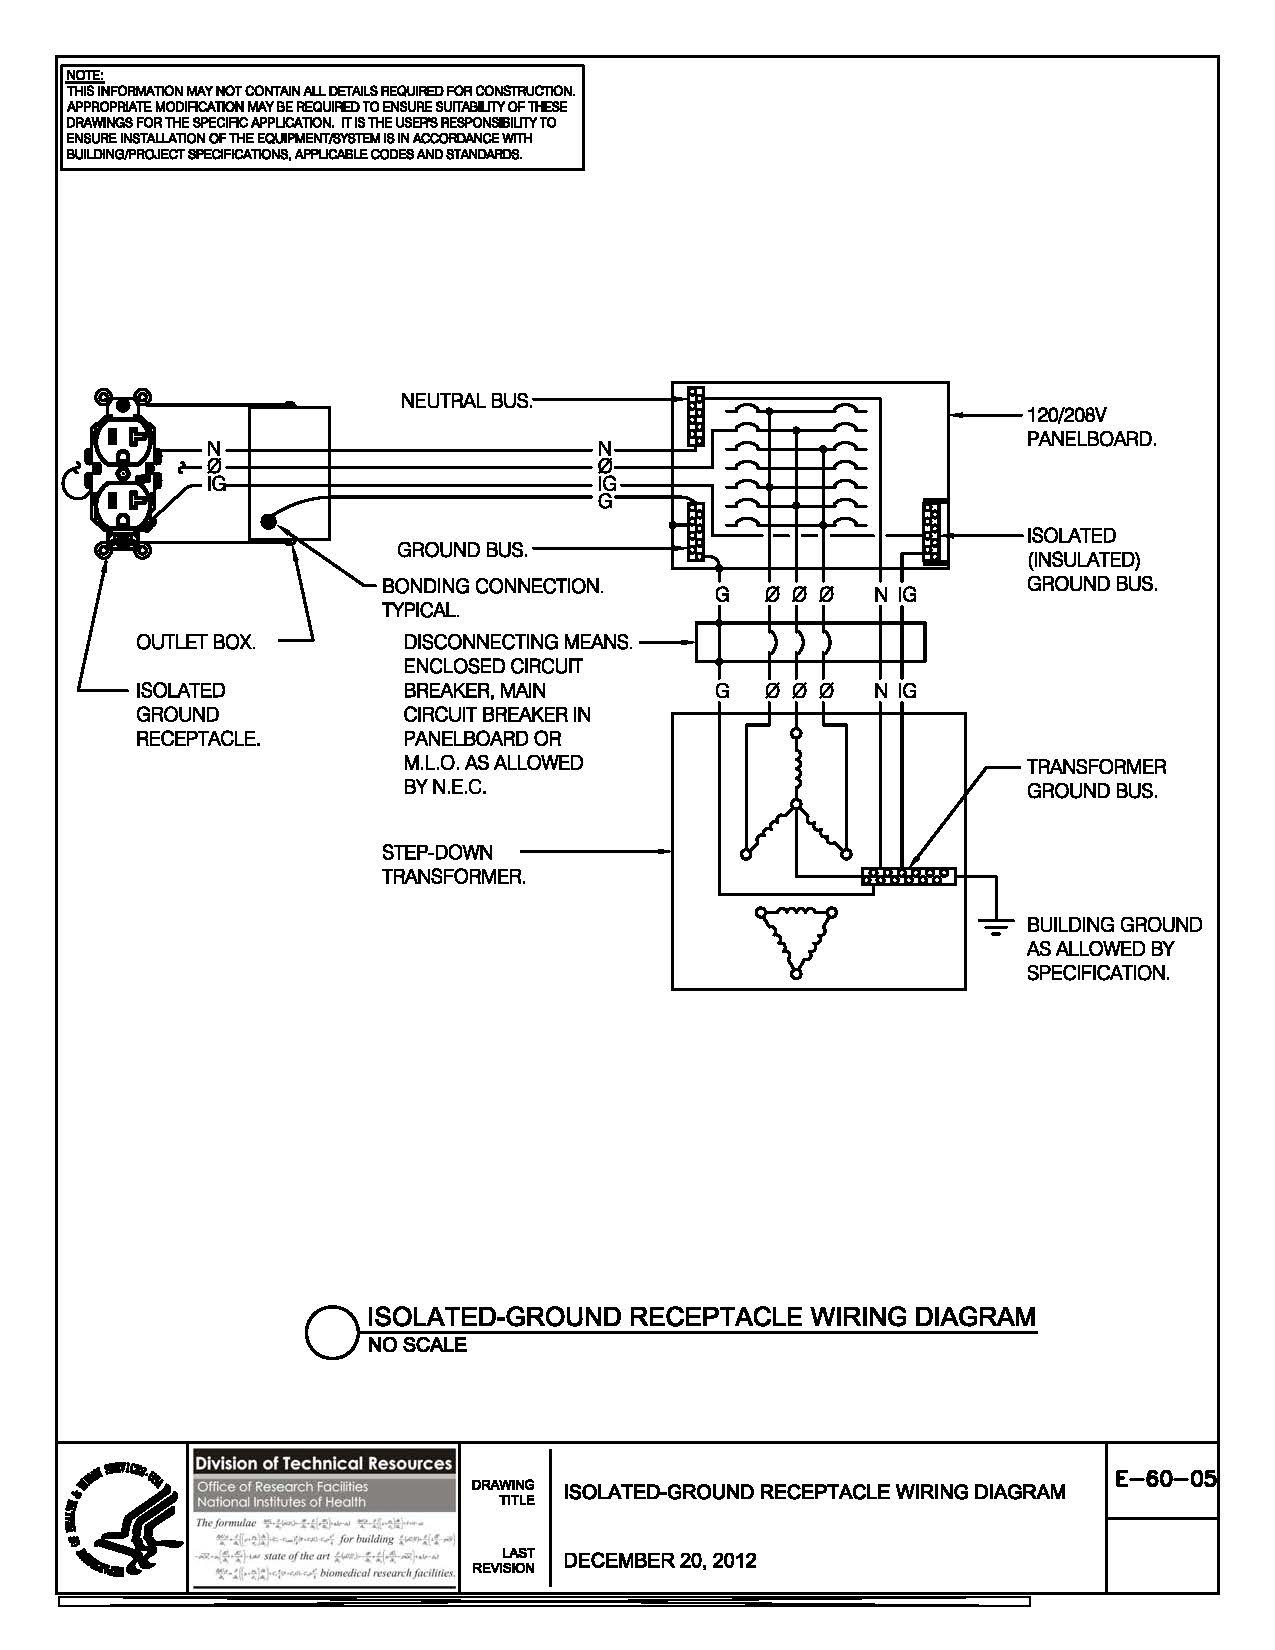 ups maintenance bypass switch wiring diagram Collection-Wiring Diagram for Ups bypass Switch Refrence Hammond Power solutions Wiring Diagram Awesome Wiring Diagrams for 11-i